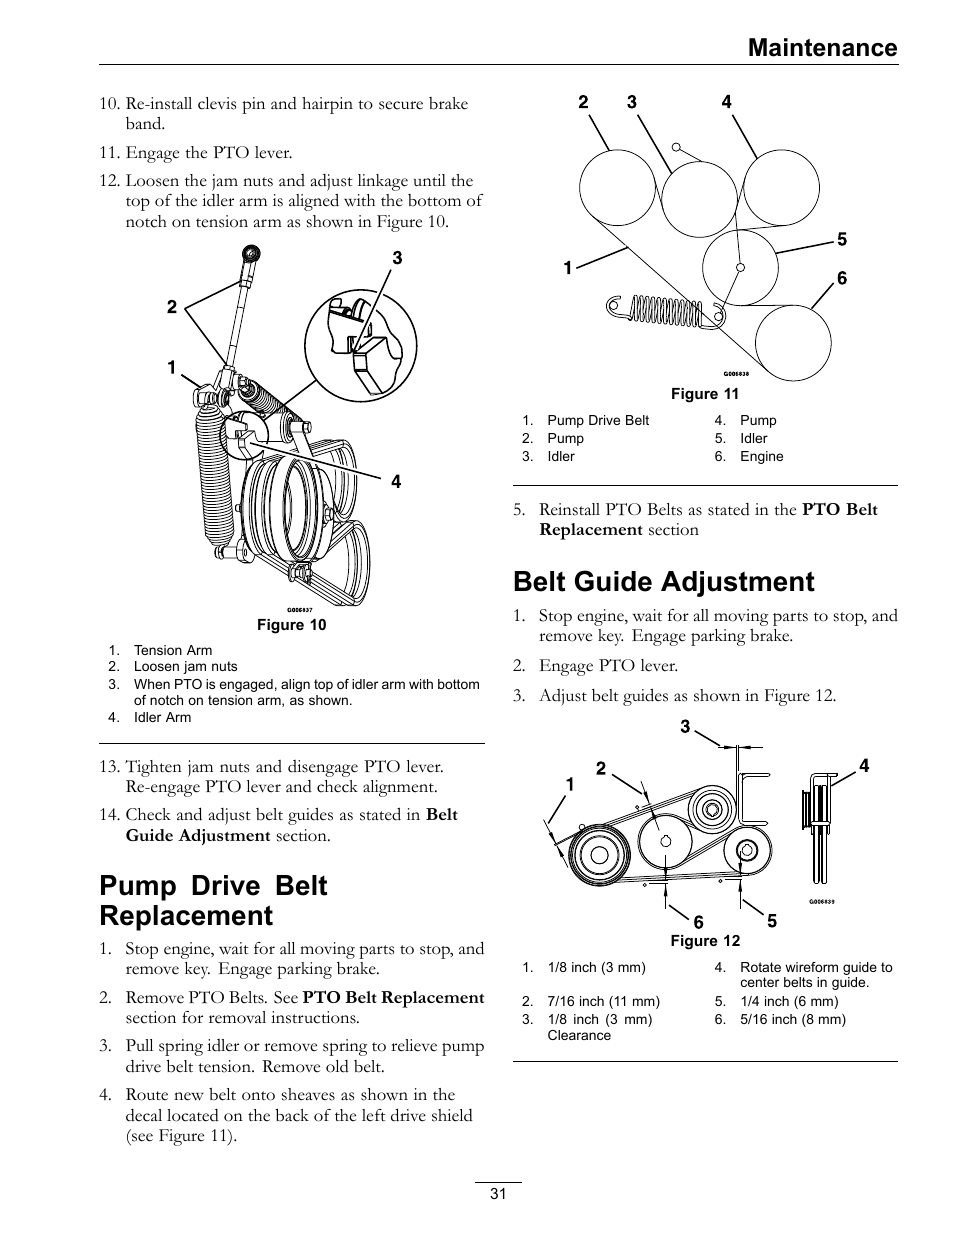 hight resolution of pump drive belt replacement belt guide adjustment maintenance exmark navigator 0 user manual page 31 48